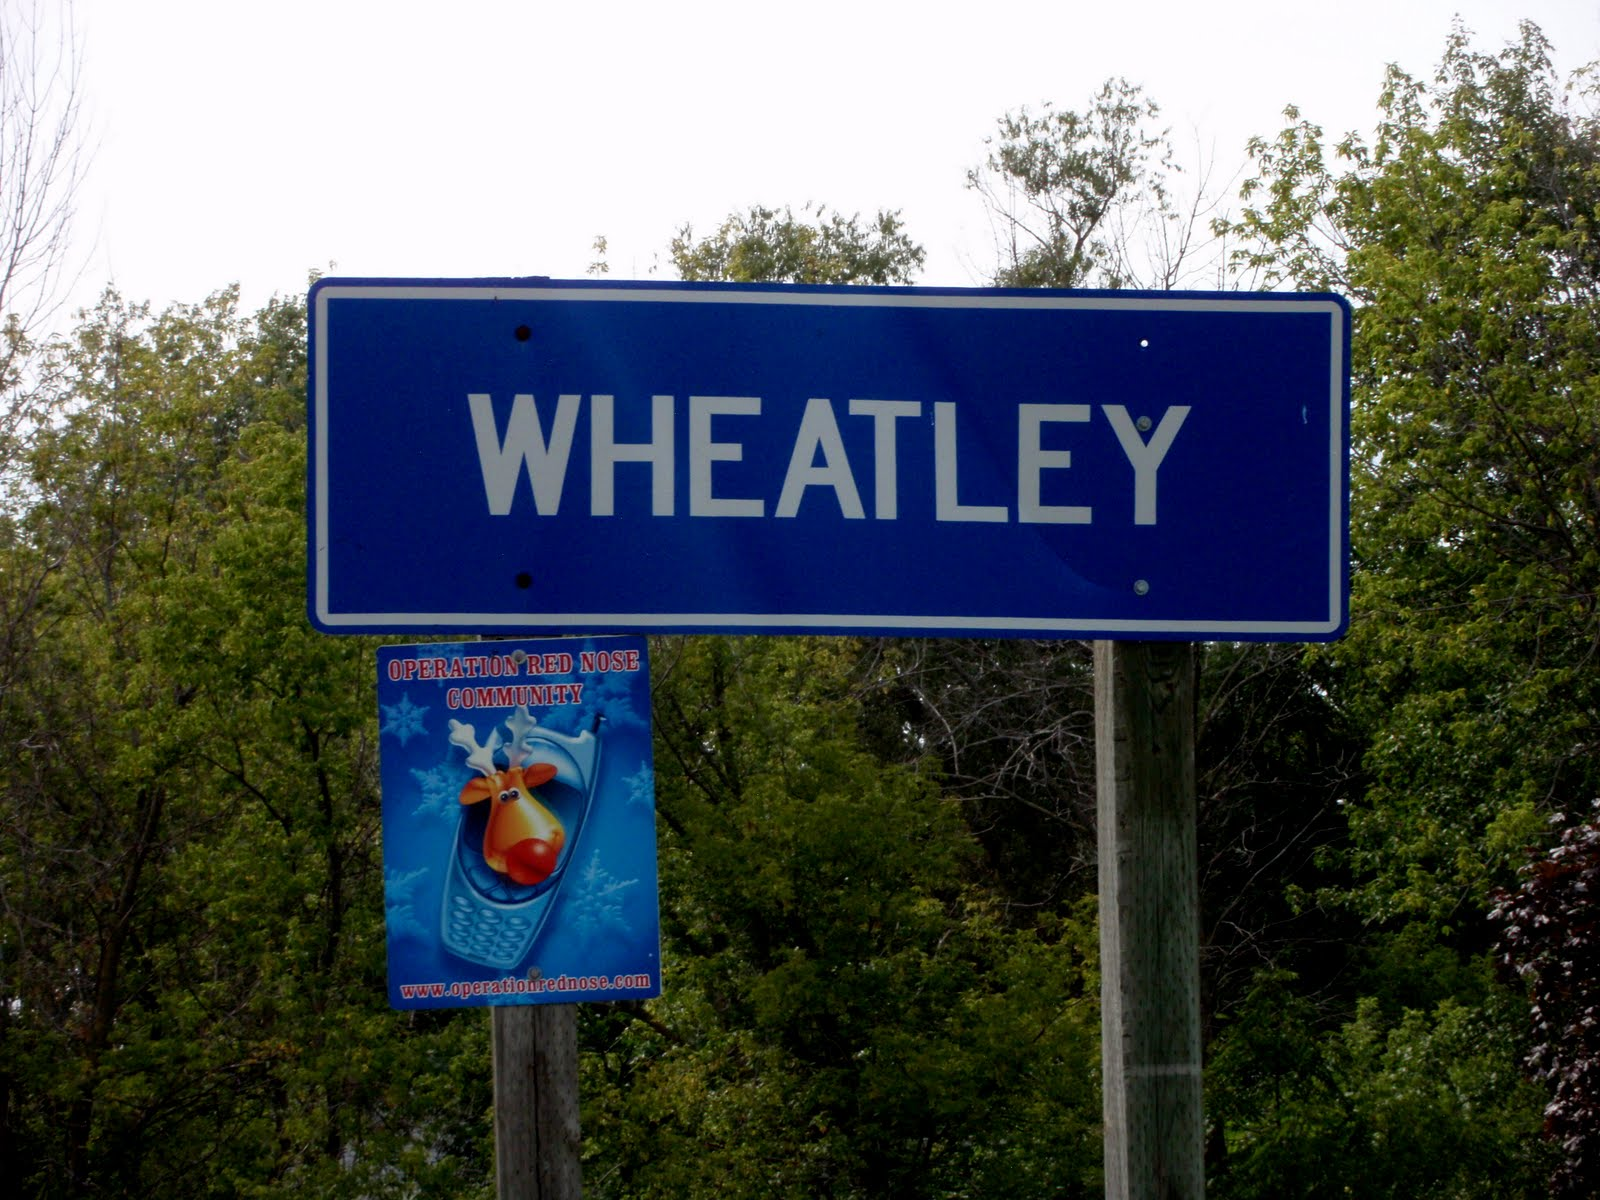 Town of Wheatley